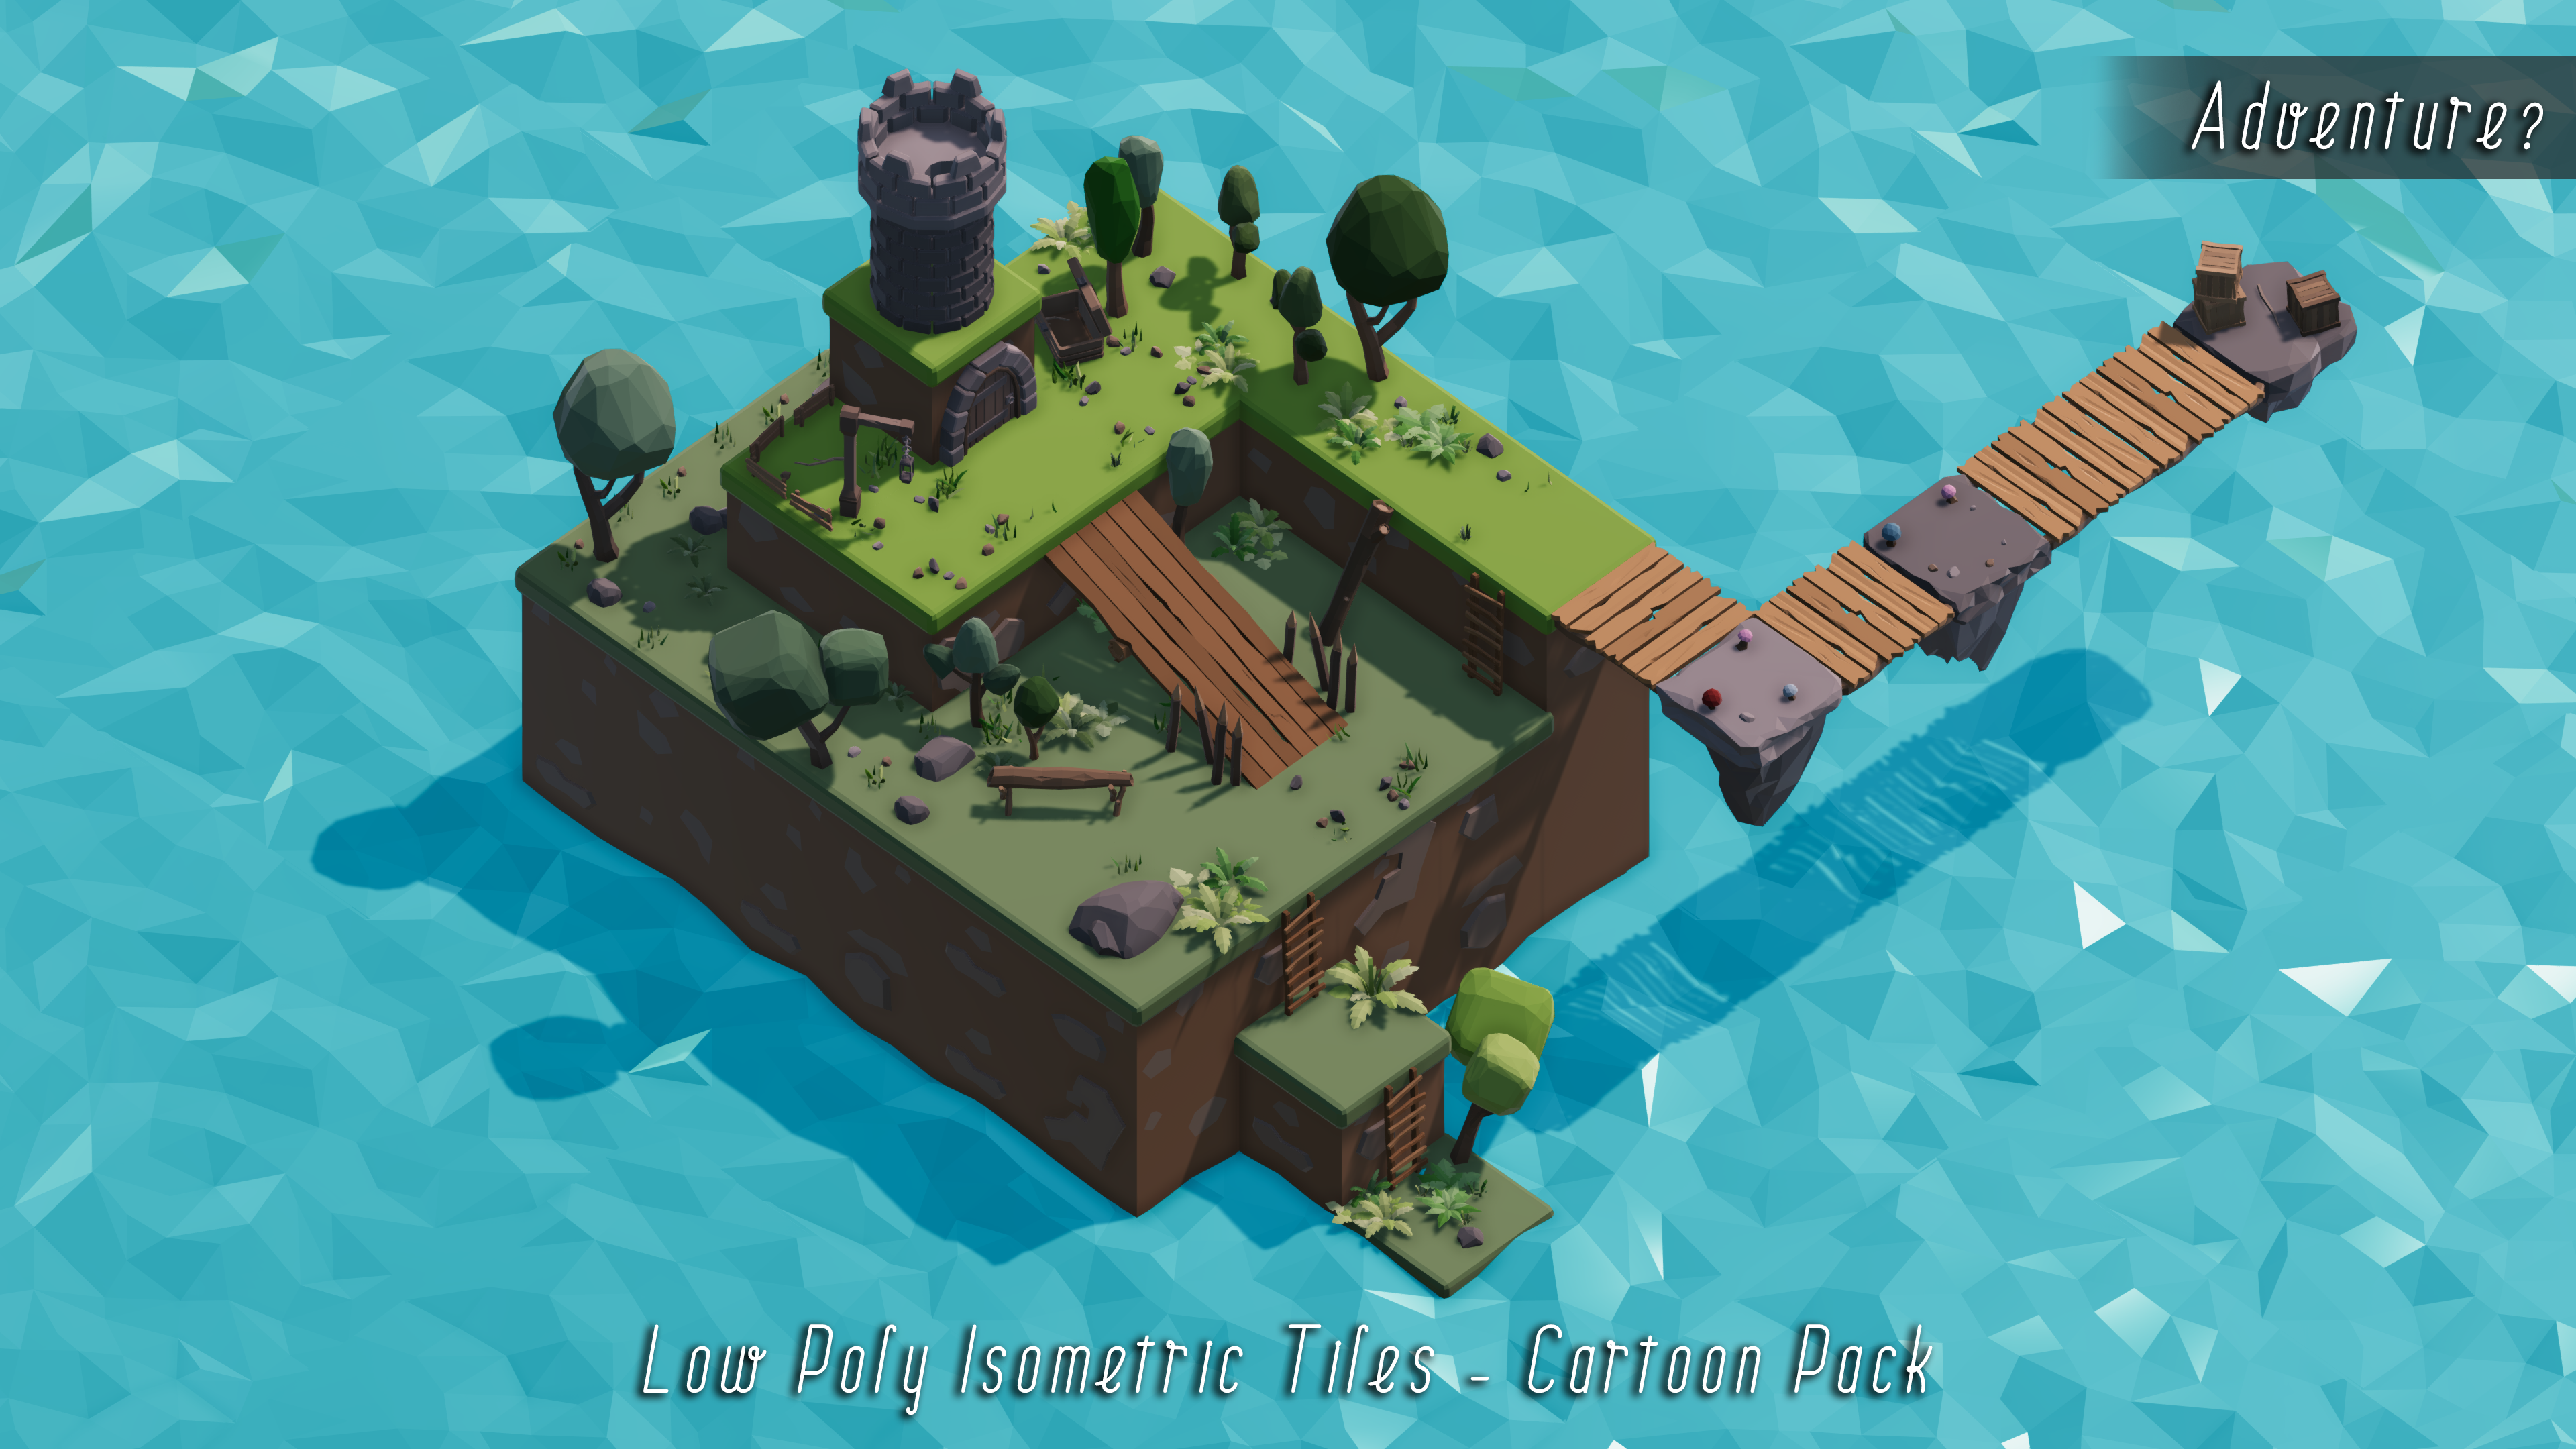 Low Poly Isometric Tiles - Cartoon Pack